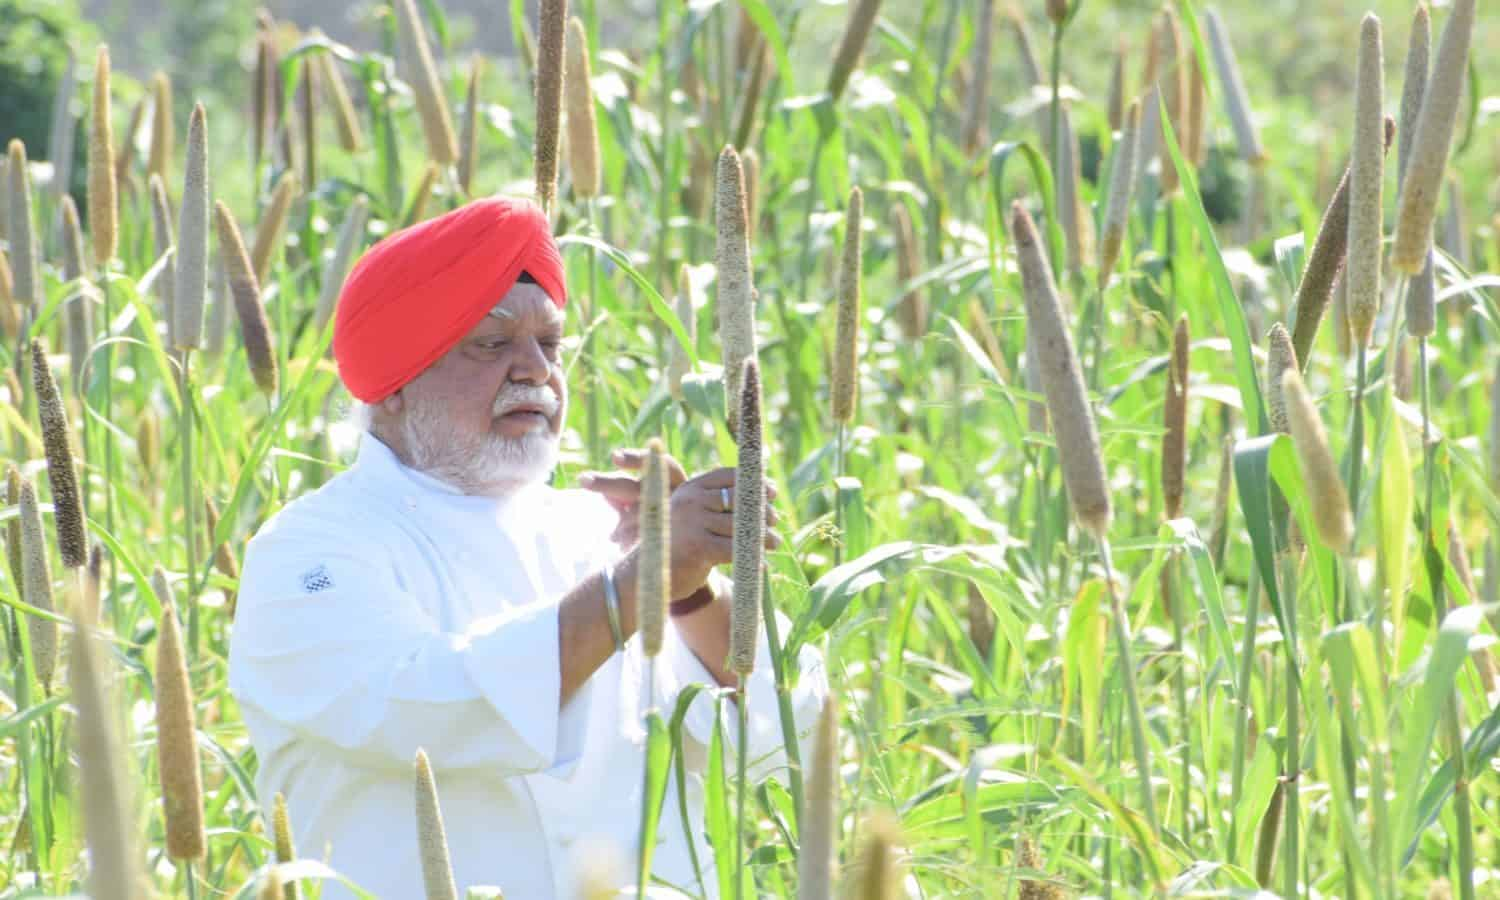 Chef Manjit Gill draws inspiration from India's culinary traditions, biodiversity, and village kitchens, asking chefs to be the driving force behind a sustainable, good food revolution.